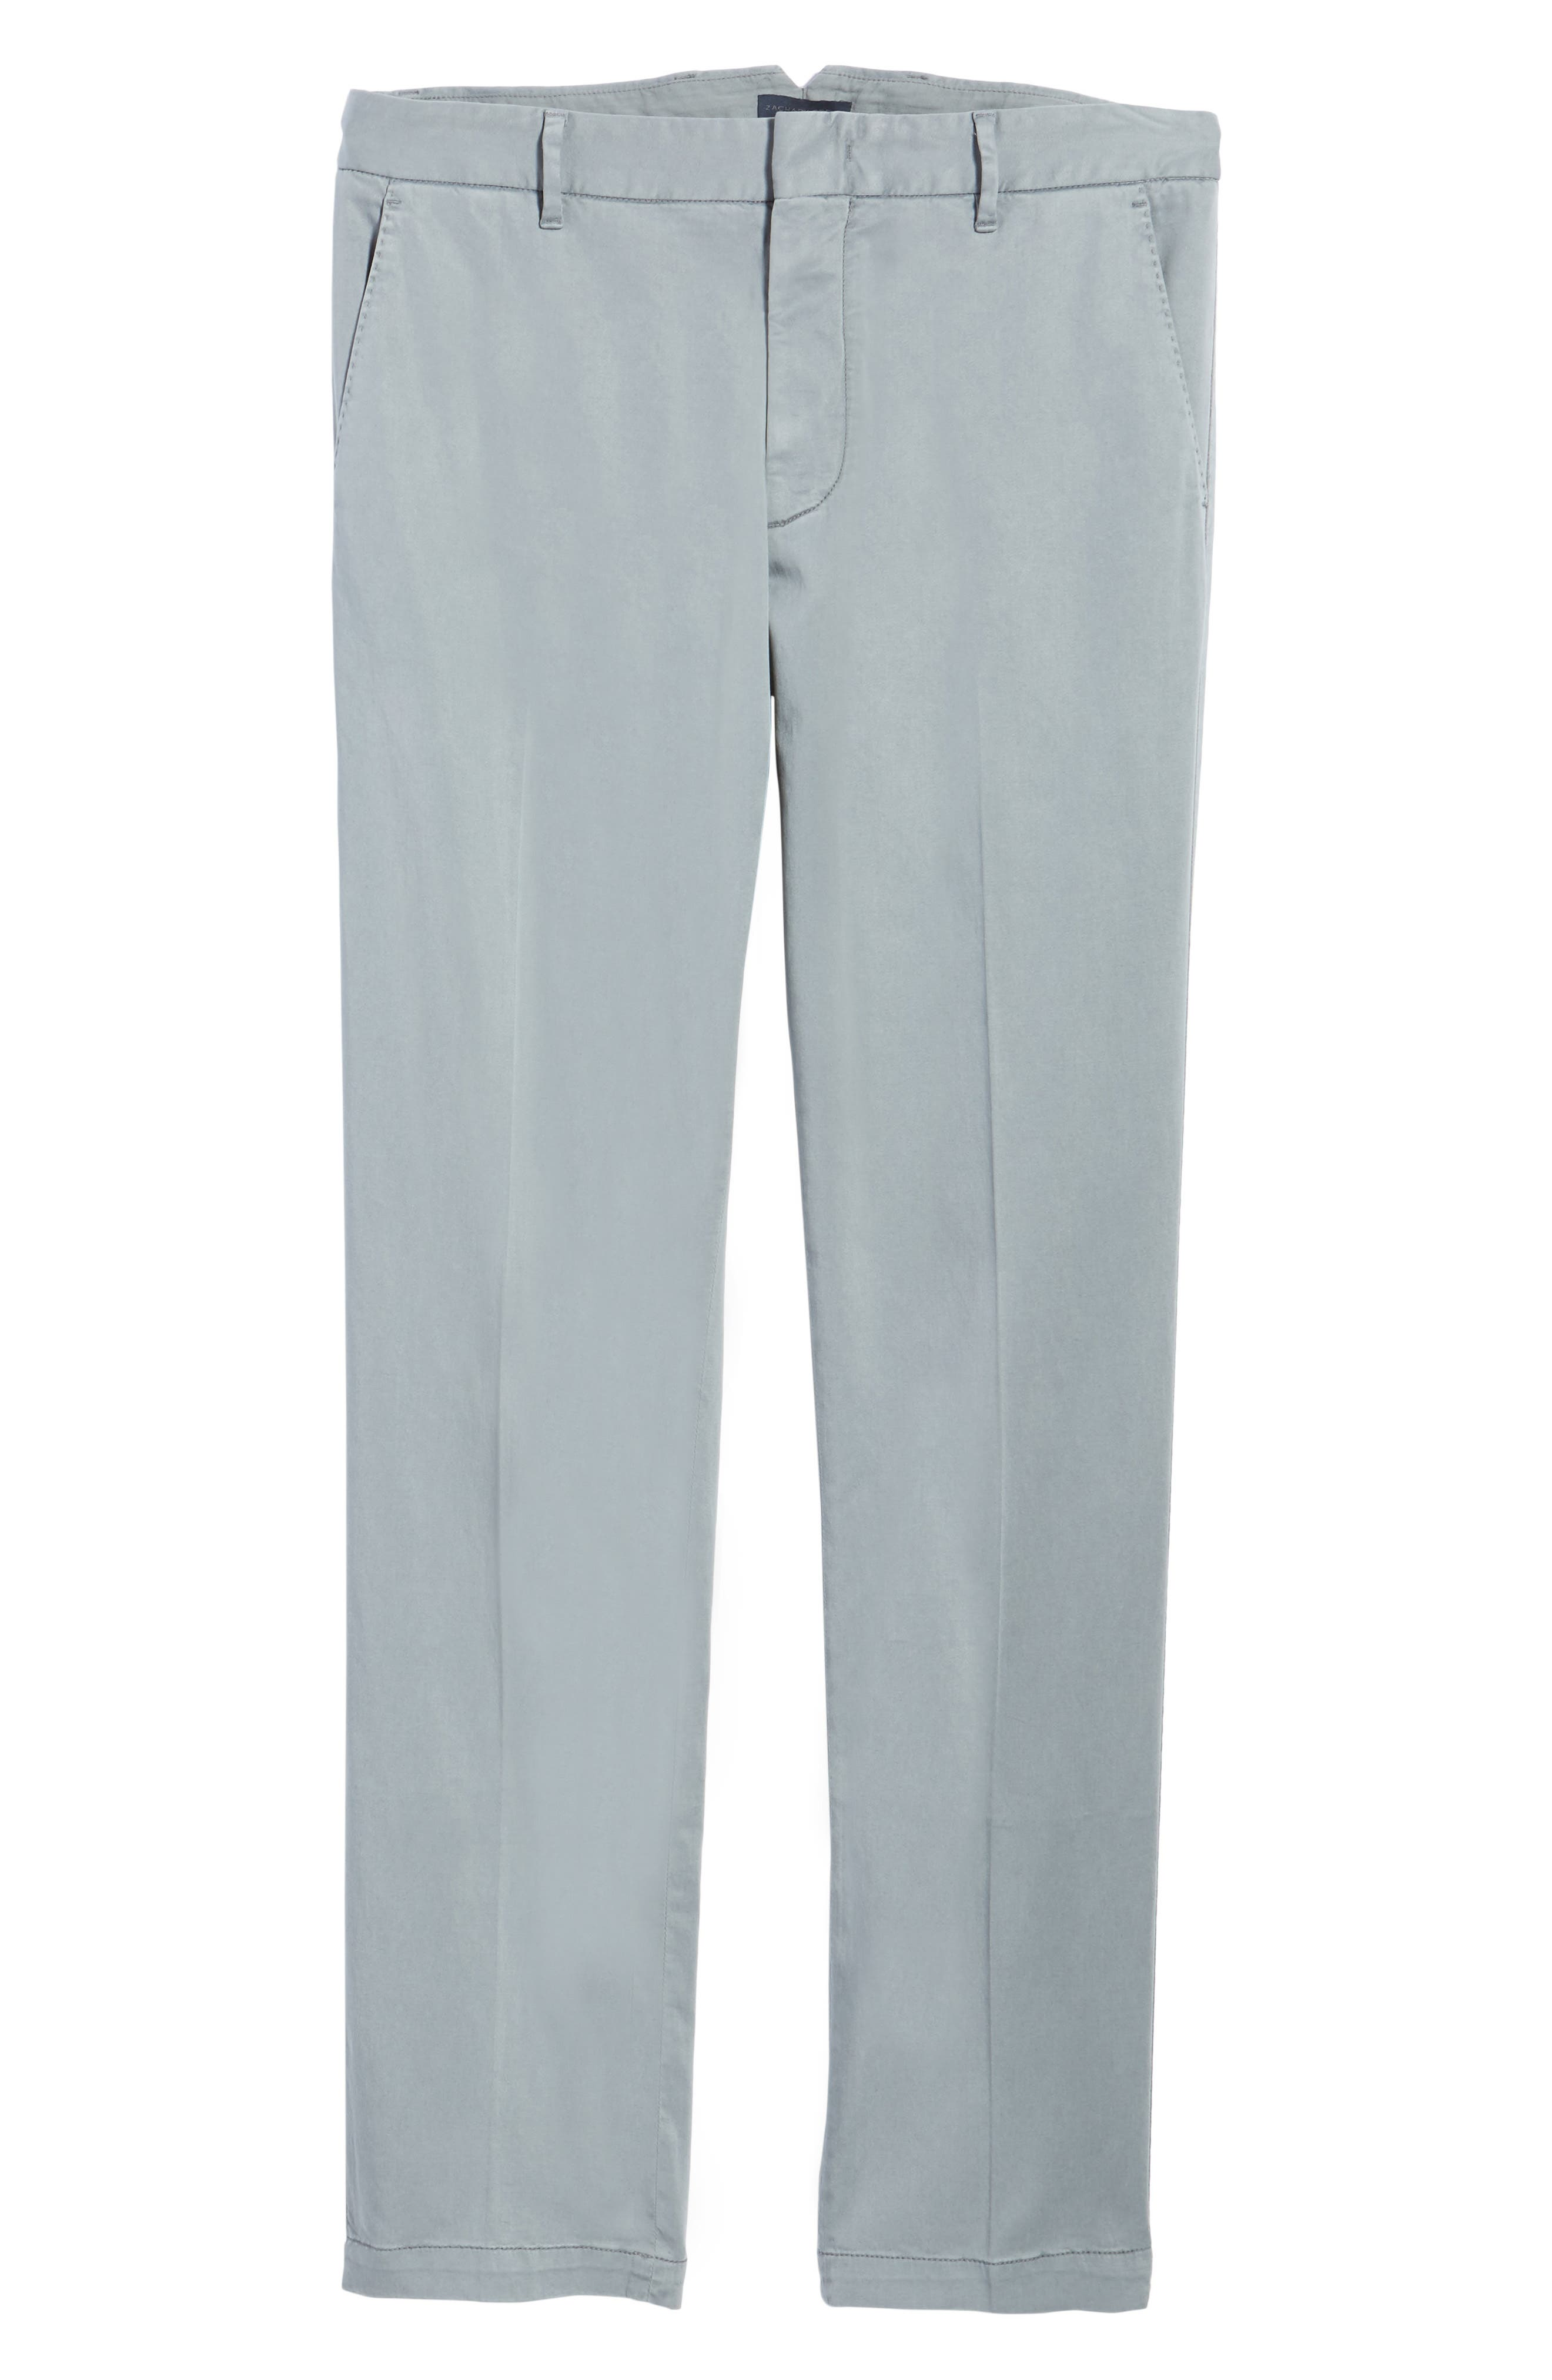 Aster Straight Fit Pants,                             Alternate thumbnail 6, color,                             GREY